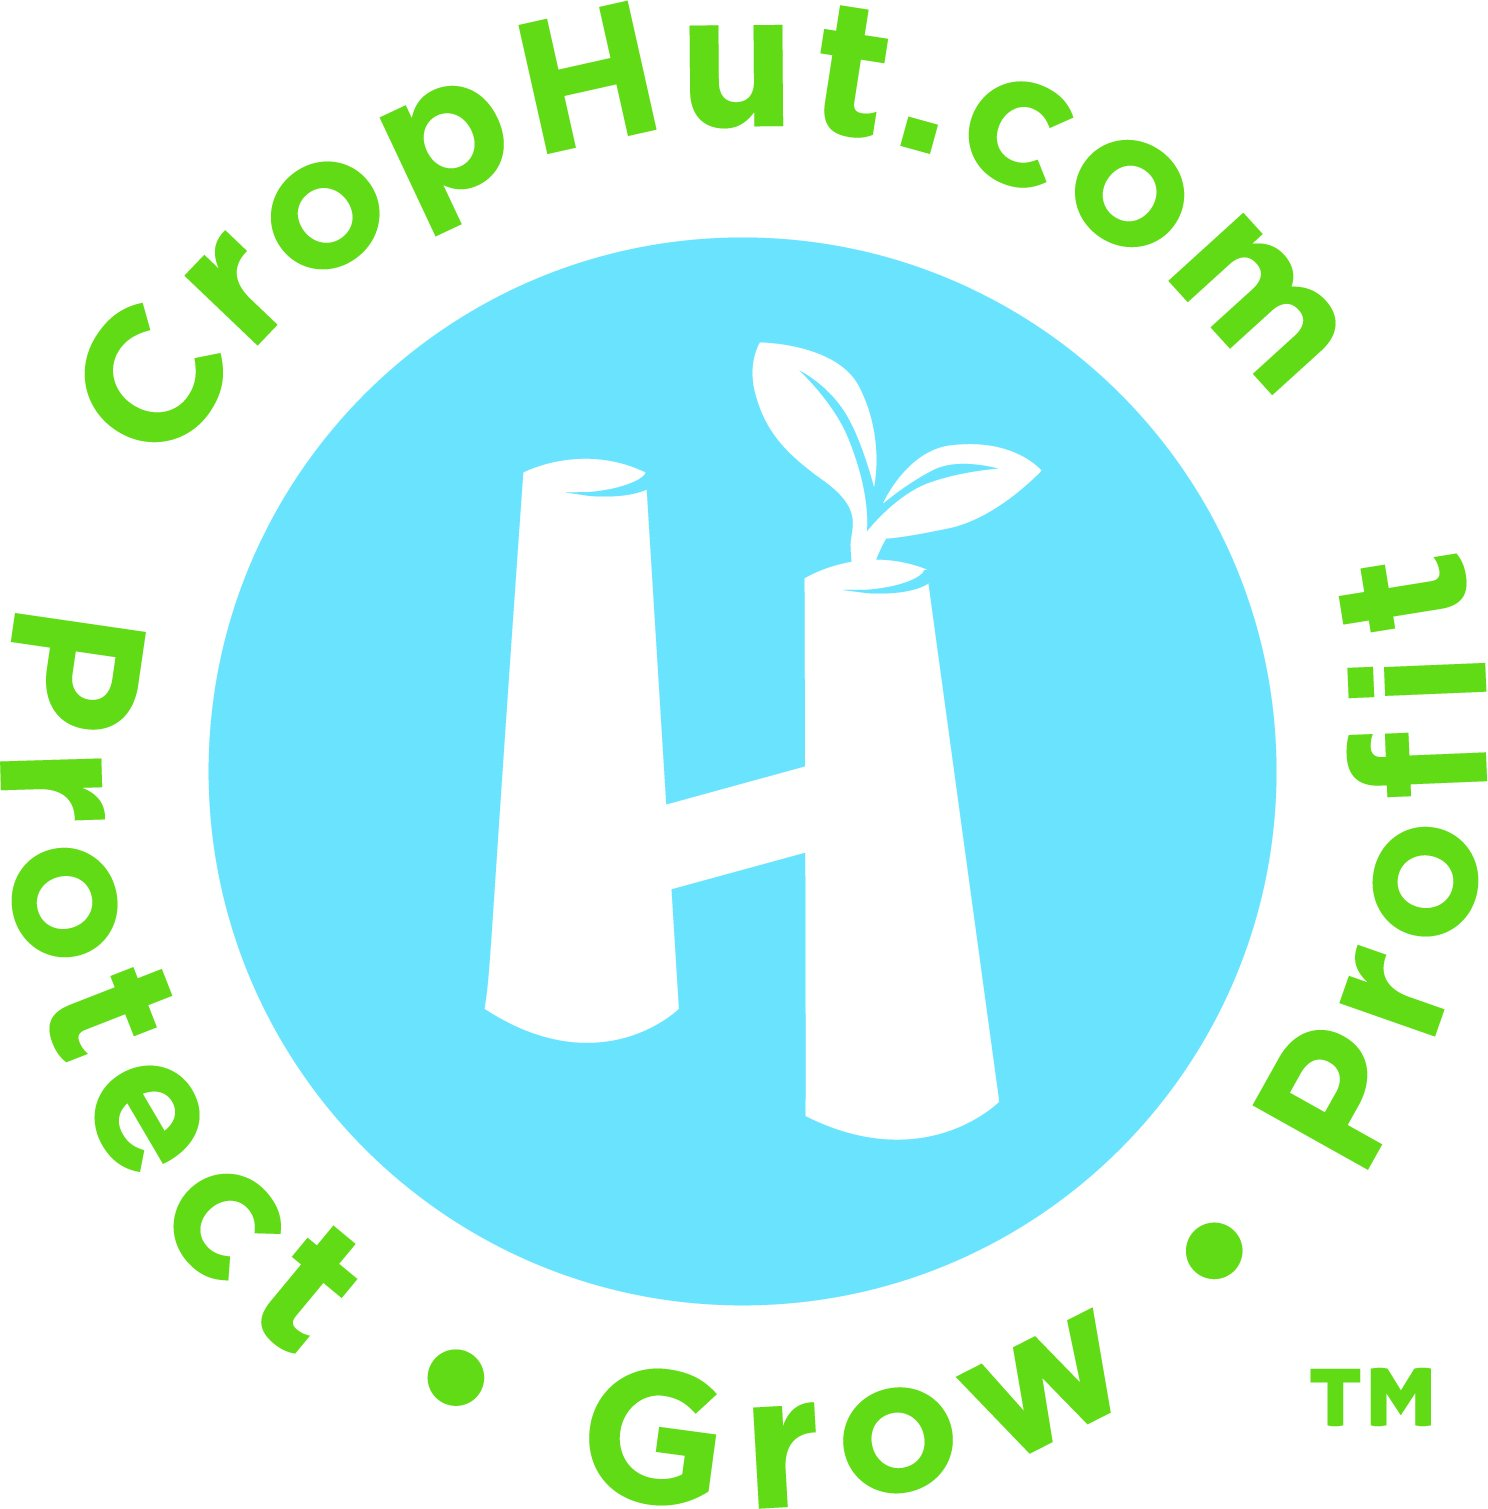 CropHut Reusable Plant Protector with Venting Frost Guard Season Extender Growth Accelerator Seedlings Clones Cuttings Gardens Trees - Love it Pack - 50 Count